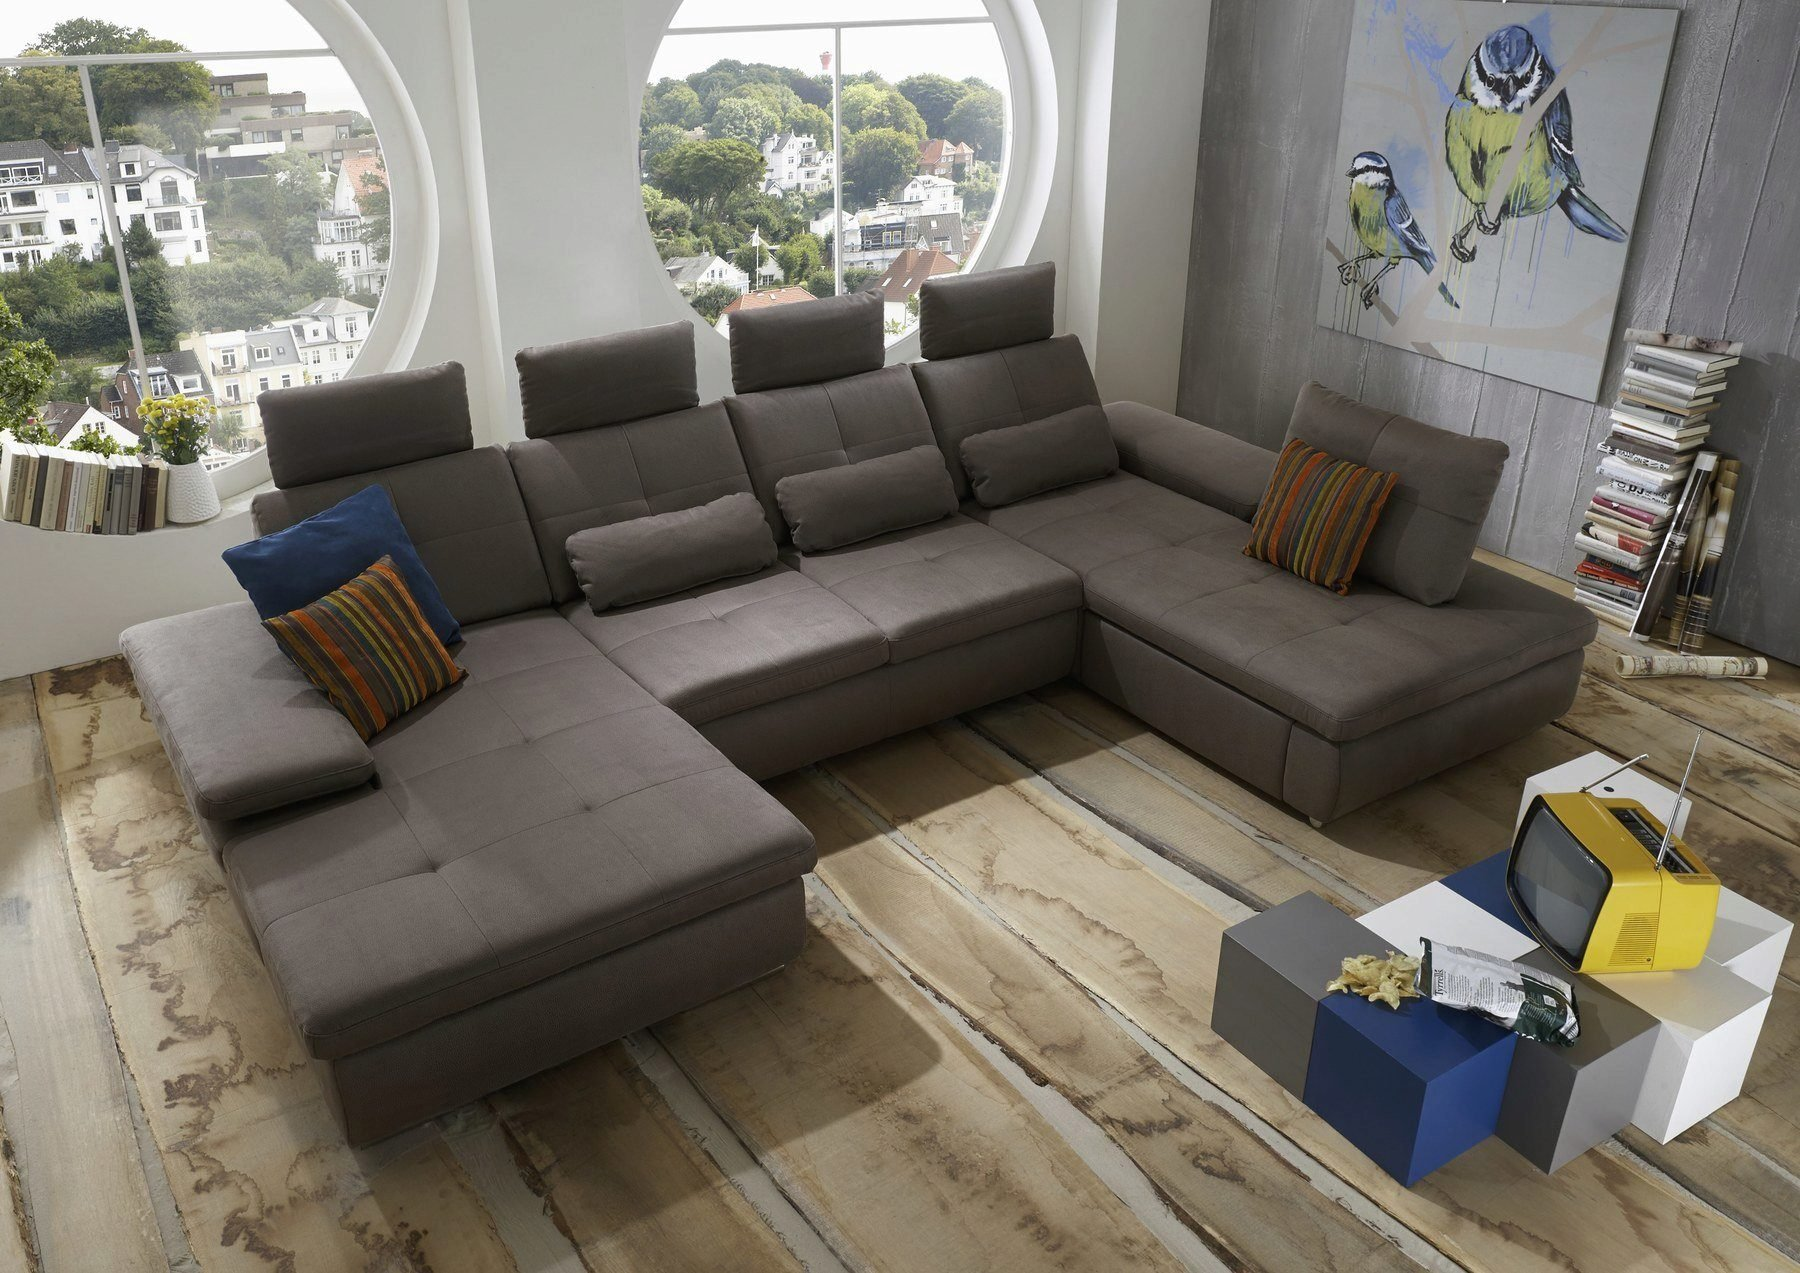 Full Size of Megapol Sofa Message Argo Armstrong Judy Stage Konfigurator Stadion Satellite Push Couch Location Planbare Modelle Polstermbel Mbel Mobl Englisch Erpo Cognac Sofa Megapol Sofa